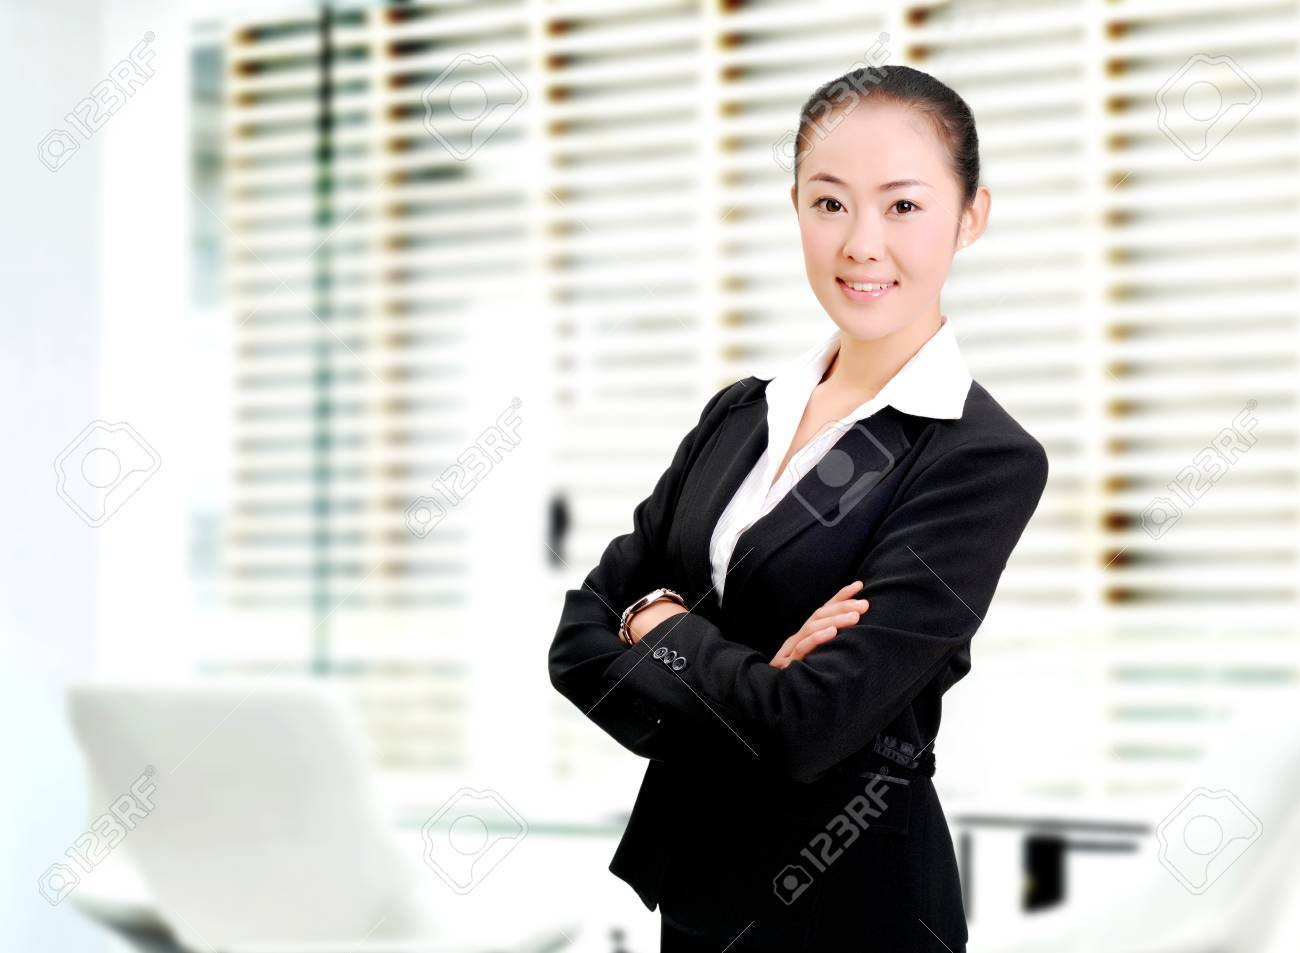 self confidence mature career women stock photo picture and self confidence mature career women stock photo 33705455